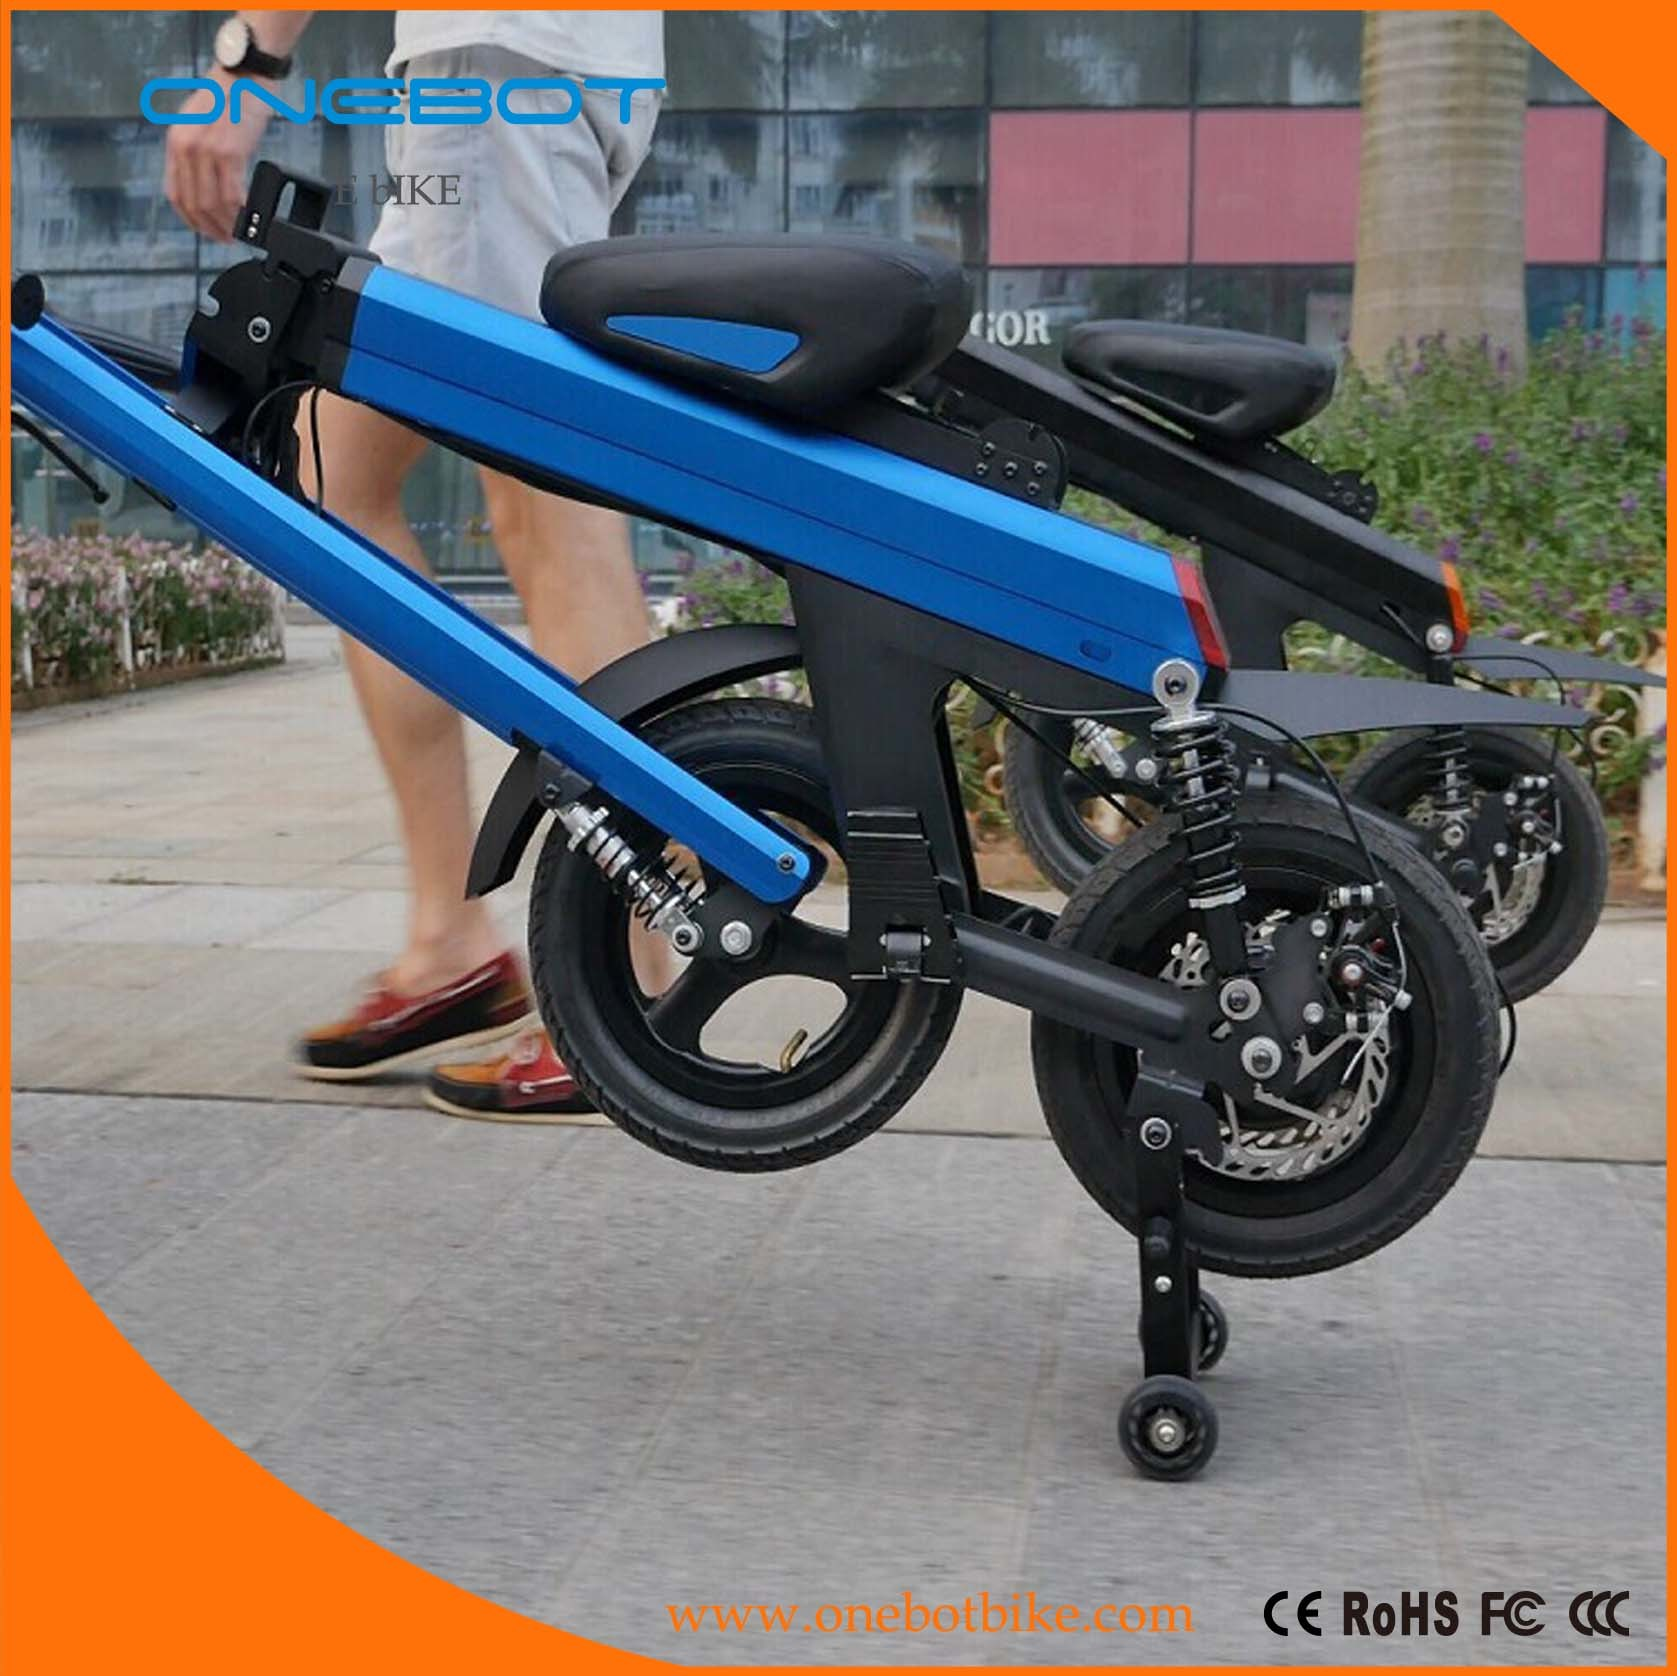 Folding Cococity 2017 Onebot E-Bike Pansonic Battery 500W Motor, Urban Mobility, Intelligent Ebike, Mini Size